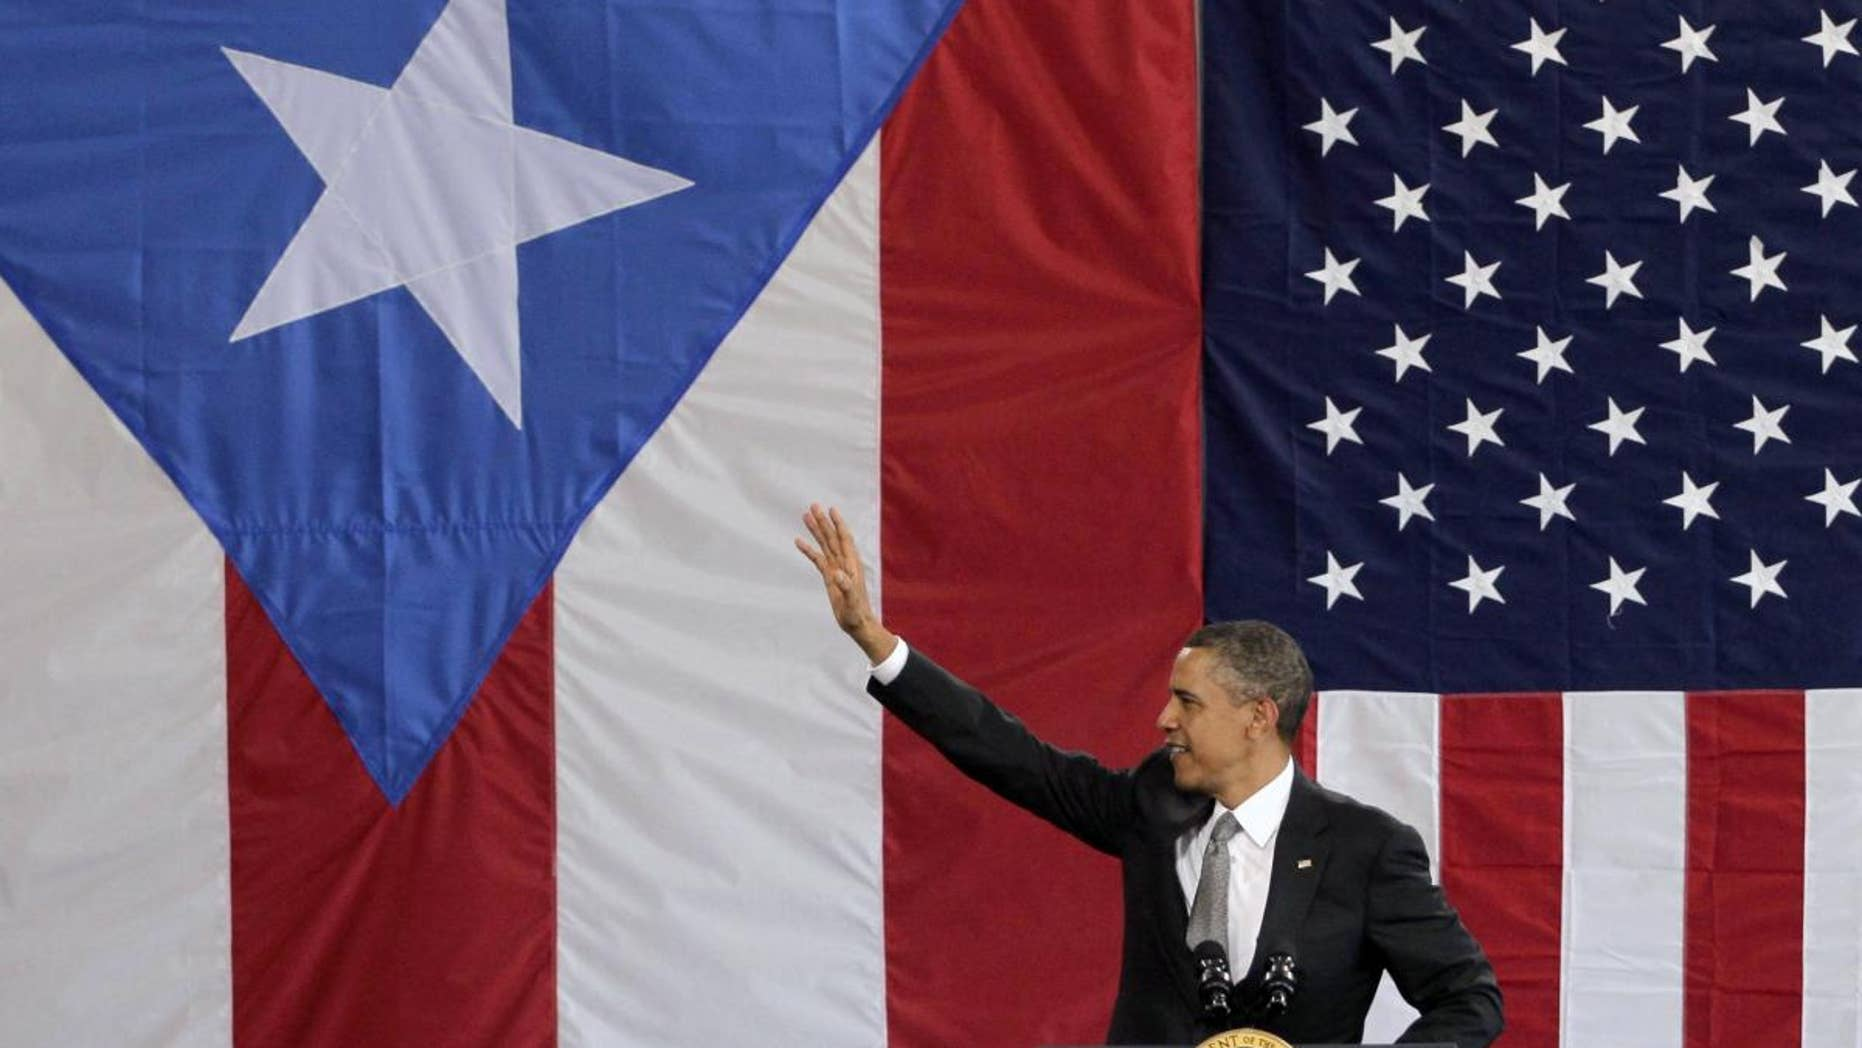 President Barack Obama waves to a crowd gathered inside a hangar at the Muniz Air National Guard Base, shortly after his arrival in San Juan, Puerto Rico, Tuesday, June 14, 2011. Obama's visit to Puerto Rico marks the first by a sitting U.S. President since John Kennedy. Obama is backed by Puerto Rican and American flags. (AP Photo/Brennan Linsley)